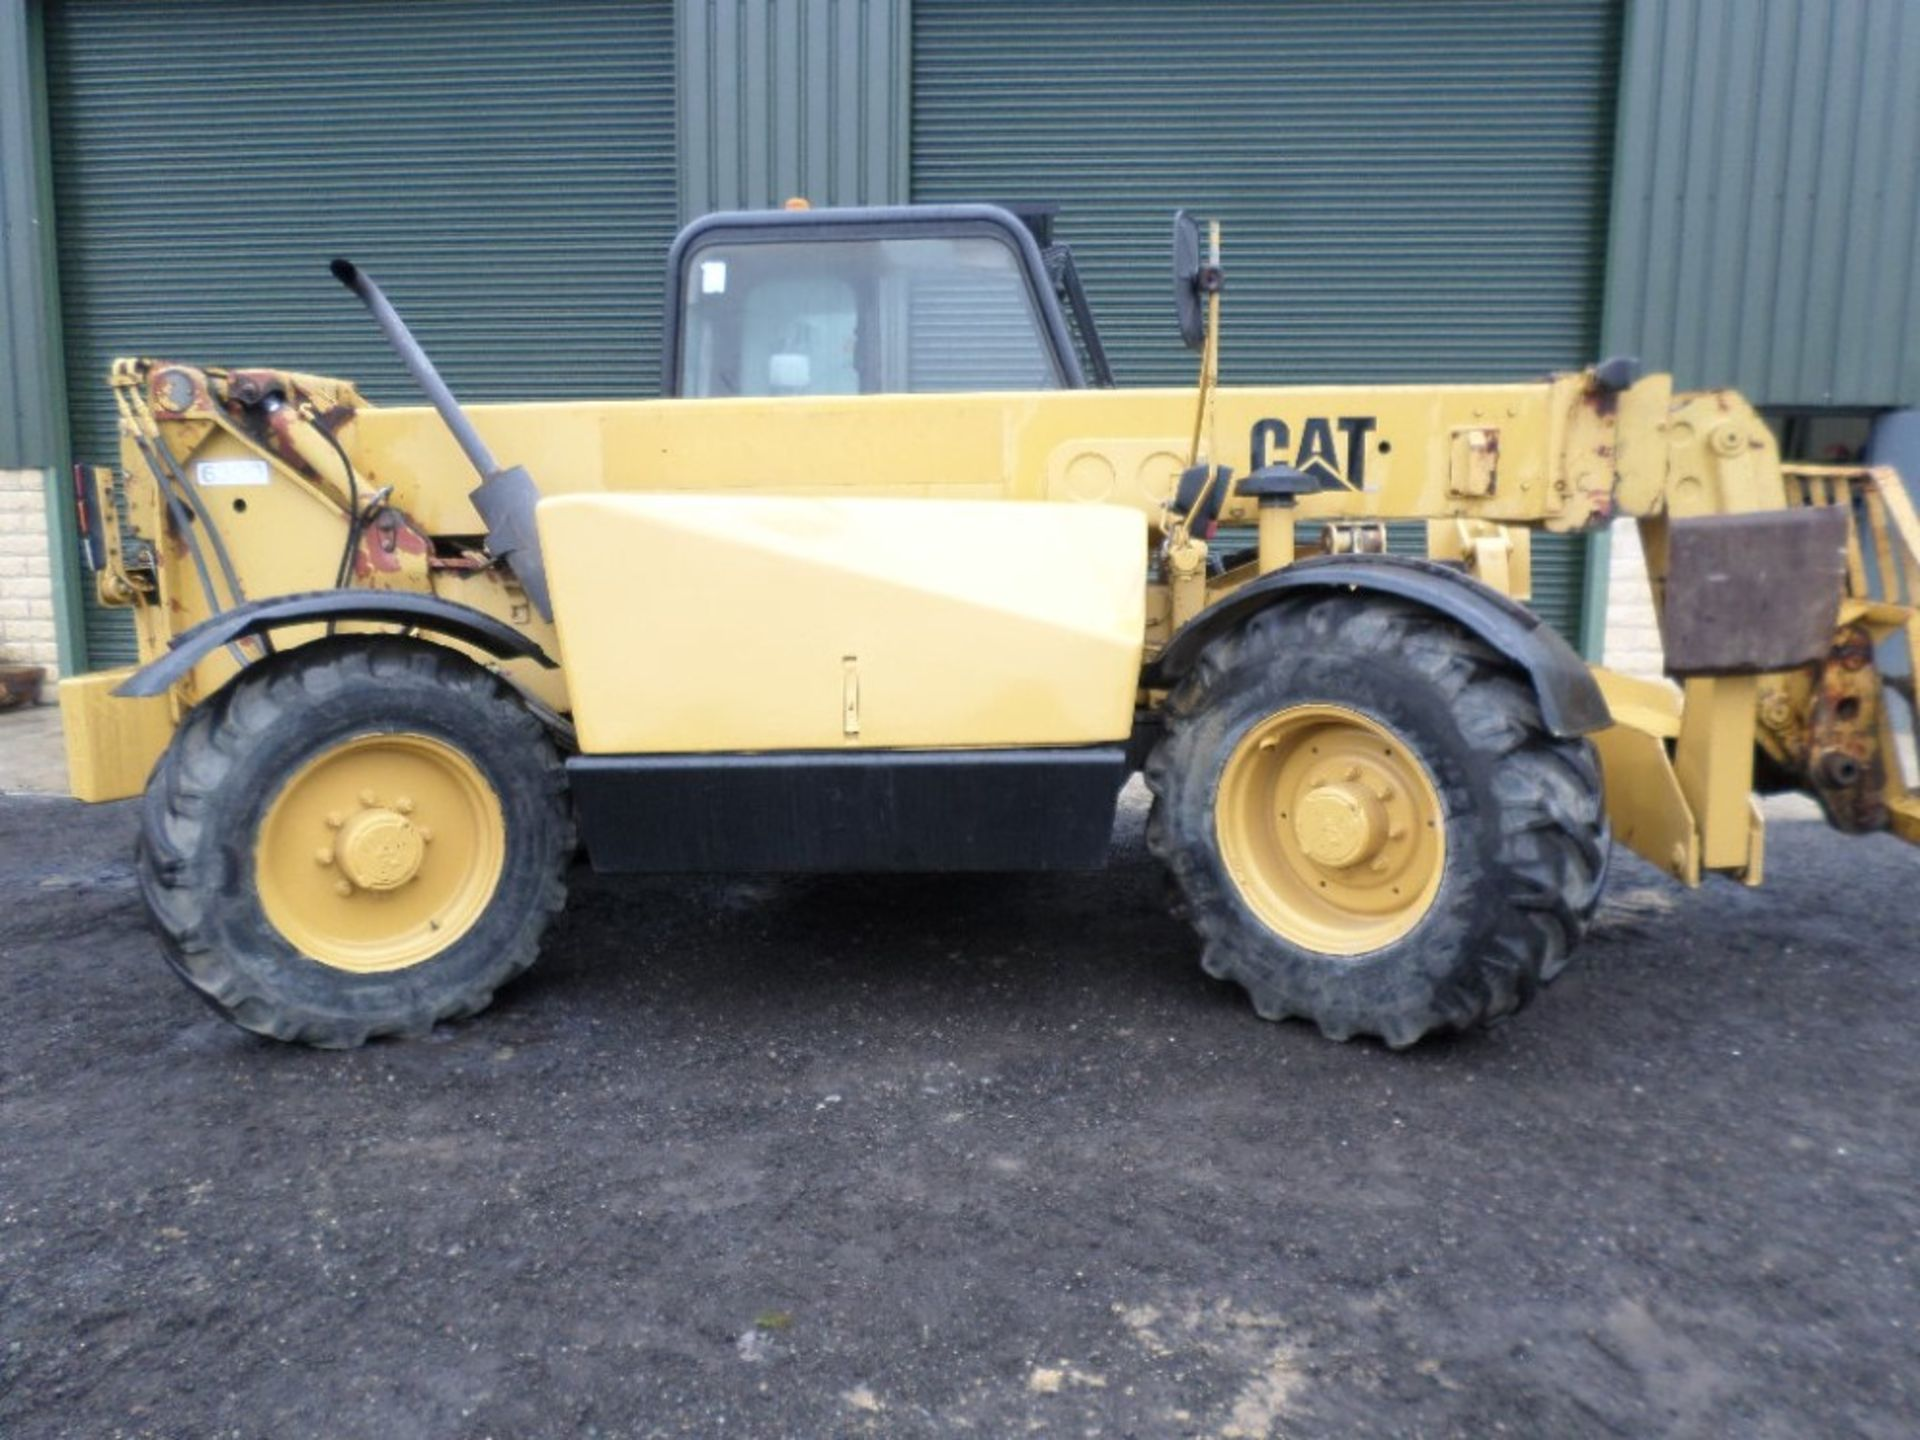 1999 CAT TH63 TELEPORTER (LOCATON SHEFFIELD) 5612 HOURS (RING FOR COLLECTION DETAILS) [+ VAT] - Image 10 of 13